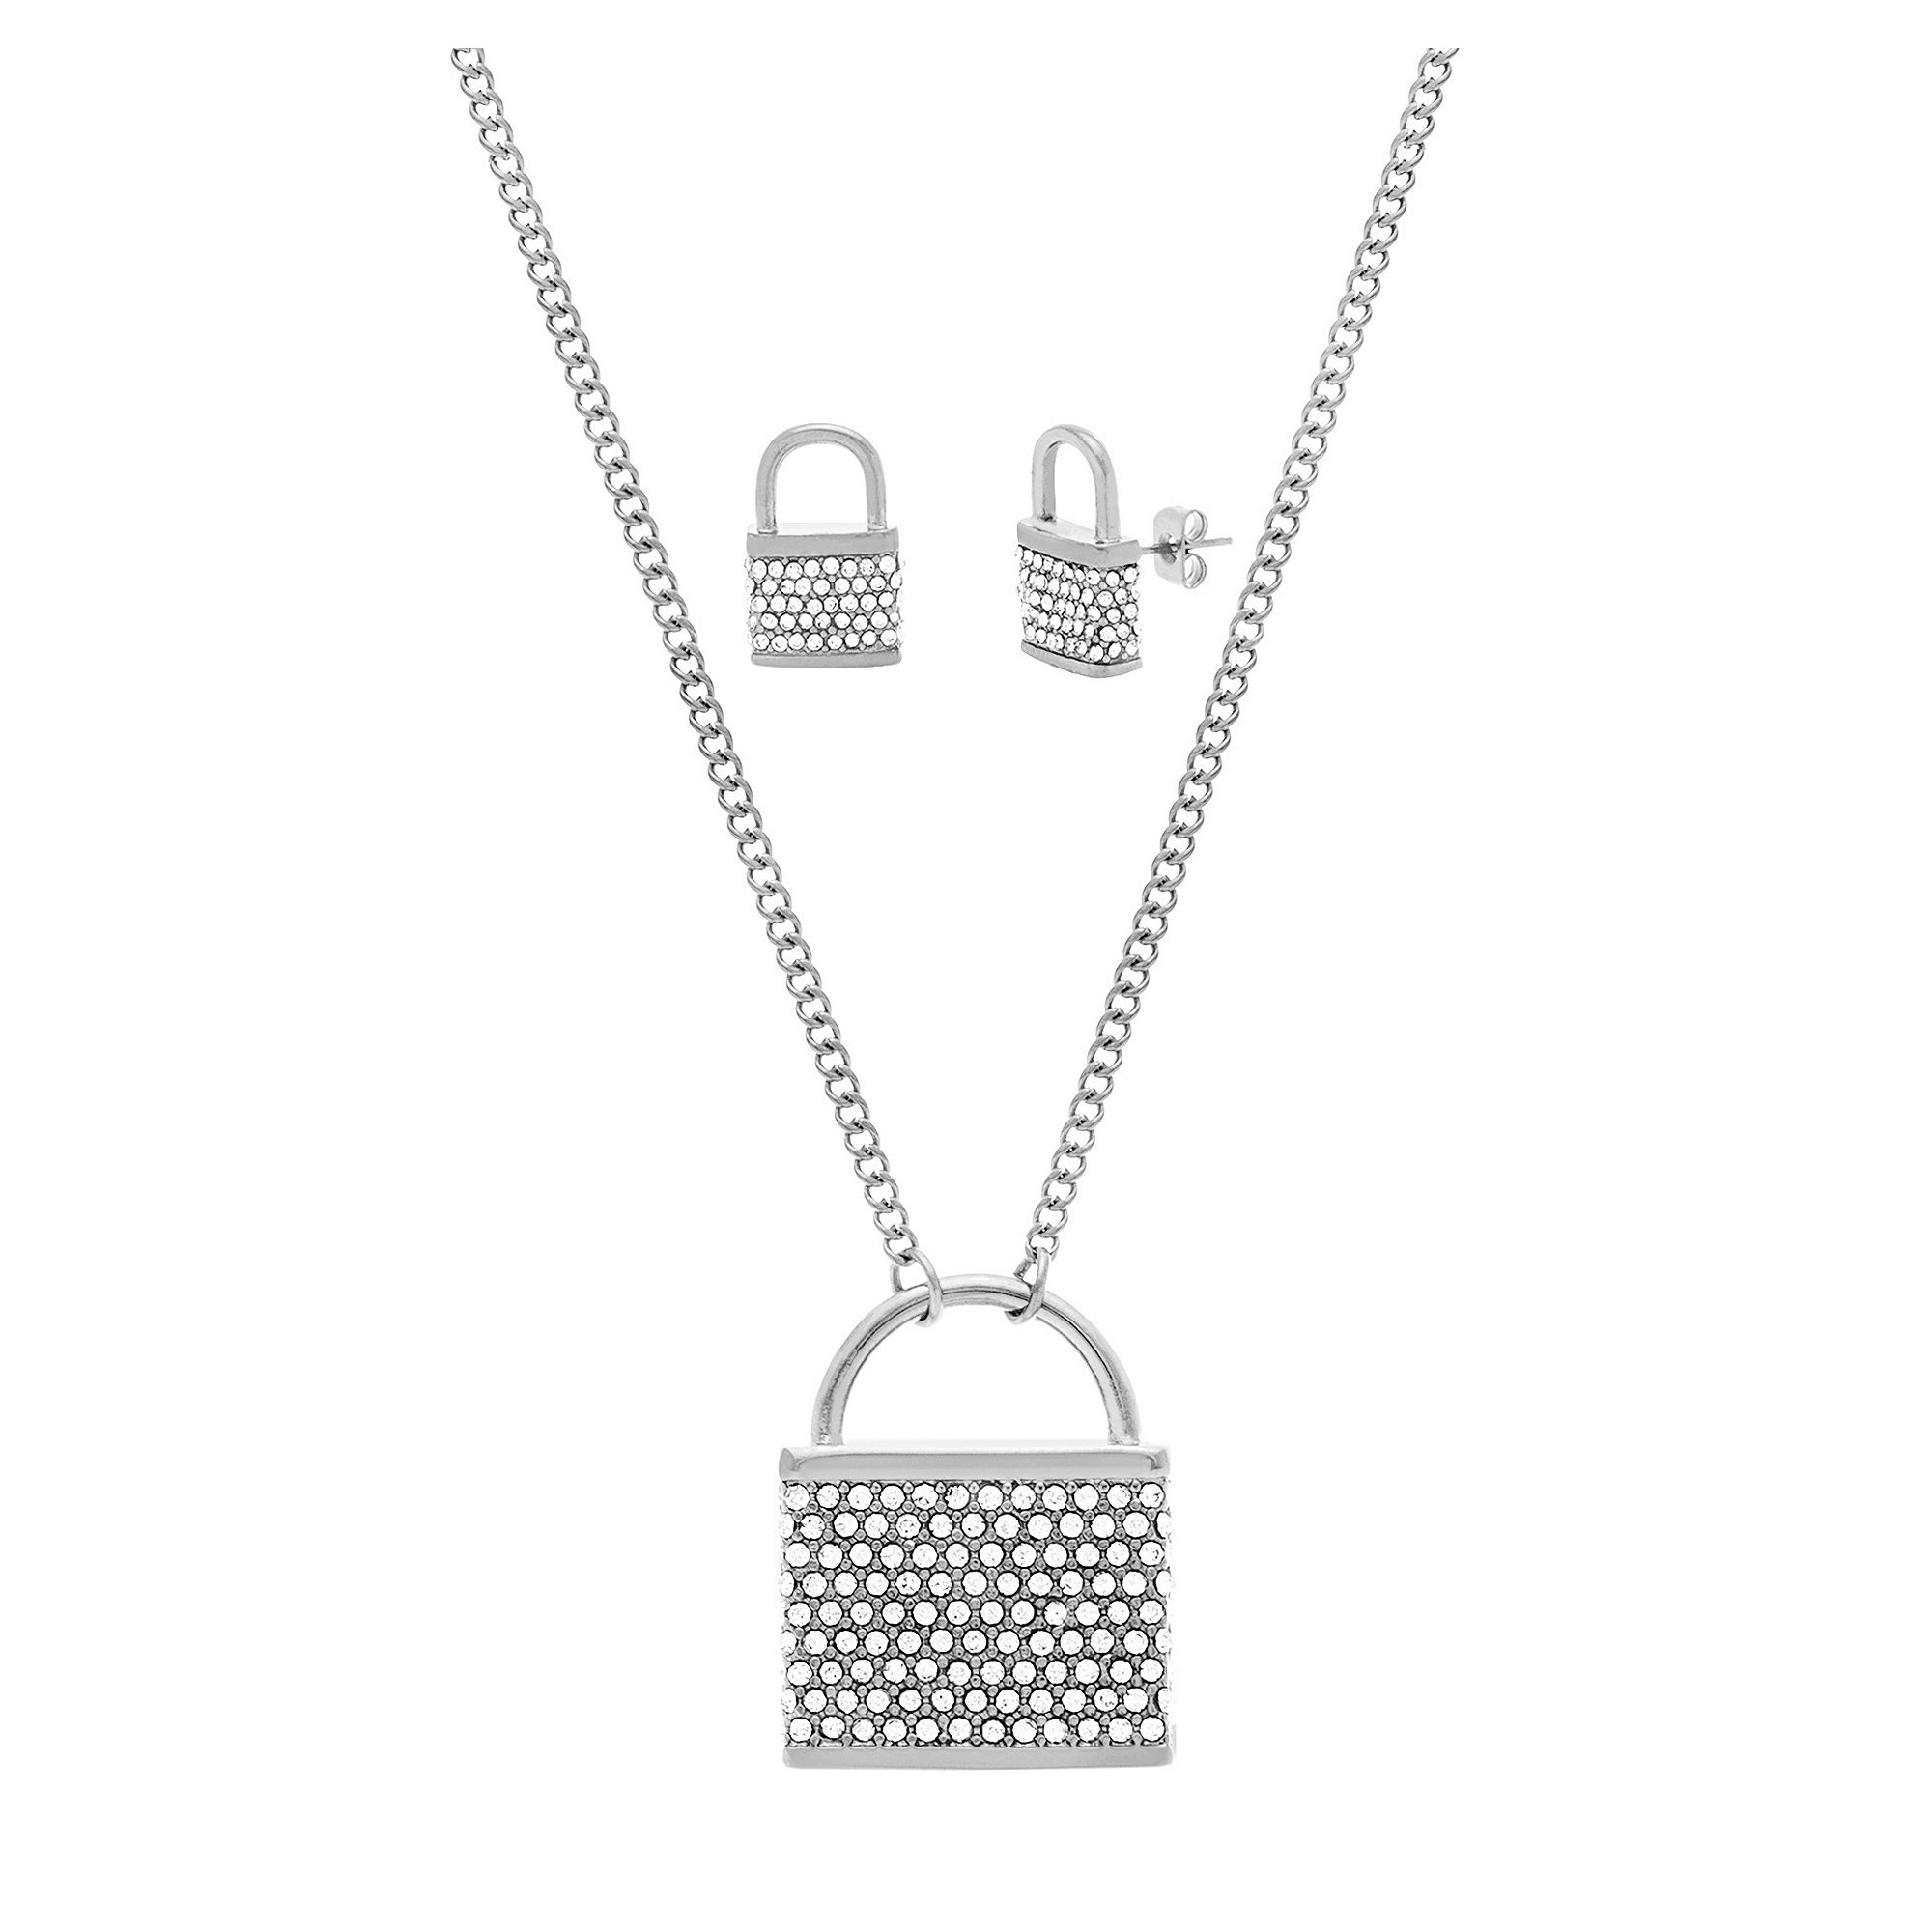 Stainless Steel 2pc Lock Jewelry Set Jcpenney